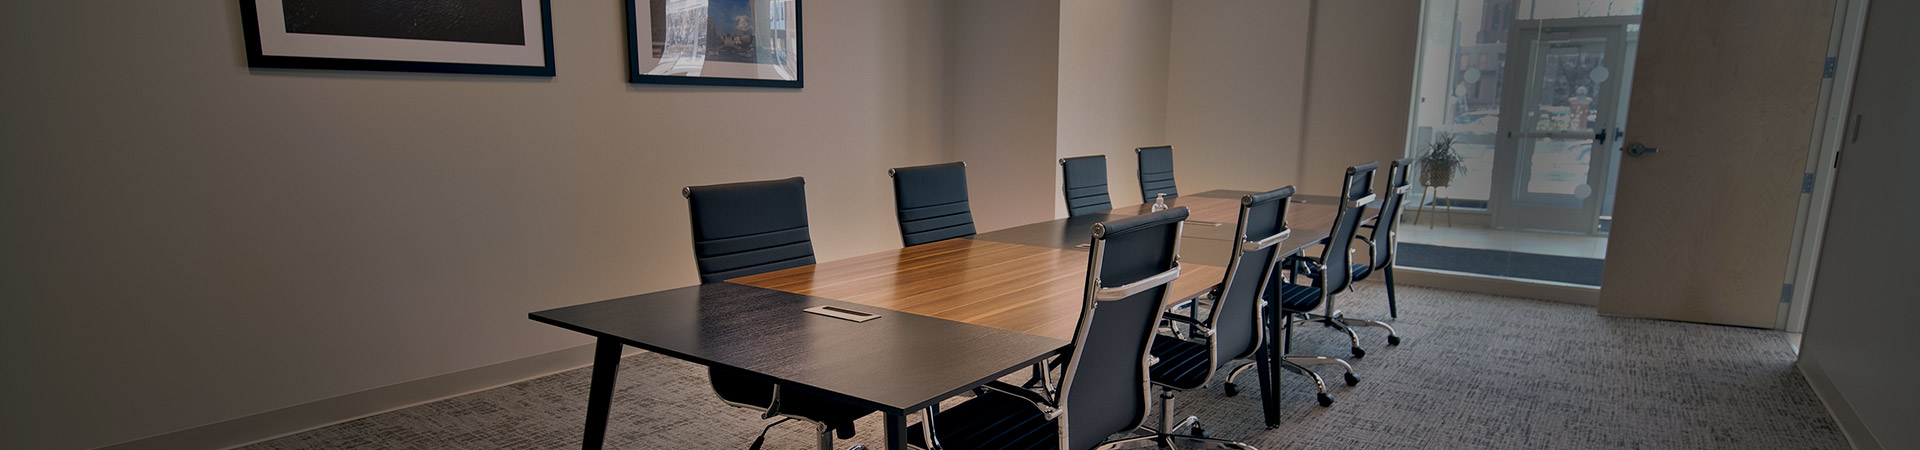 The Business Hub - Albany & Saratoga Coworking Shared Office Space, Private Offices